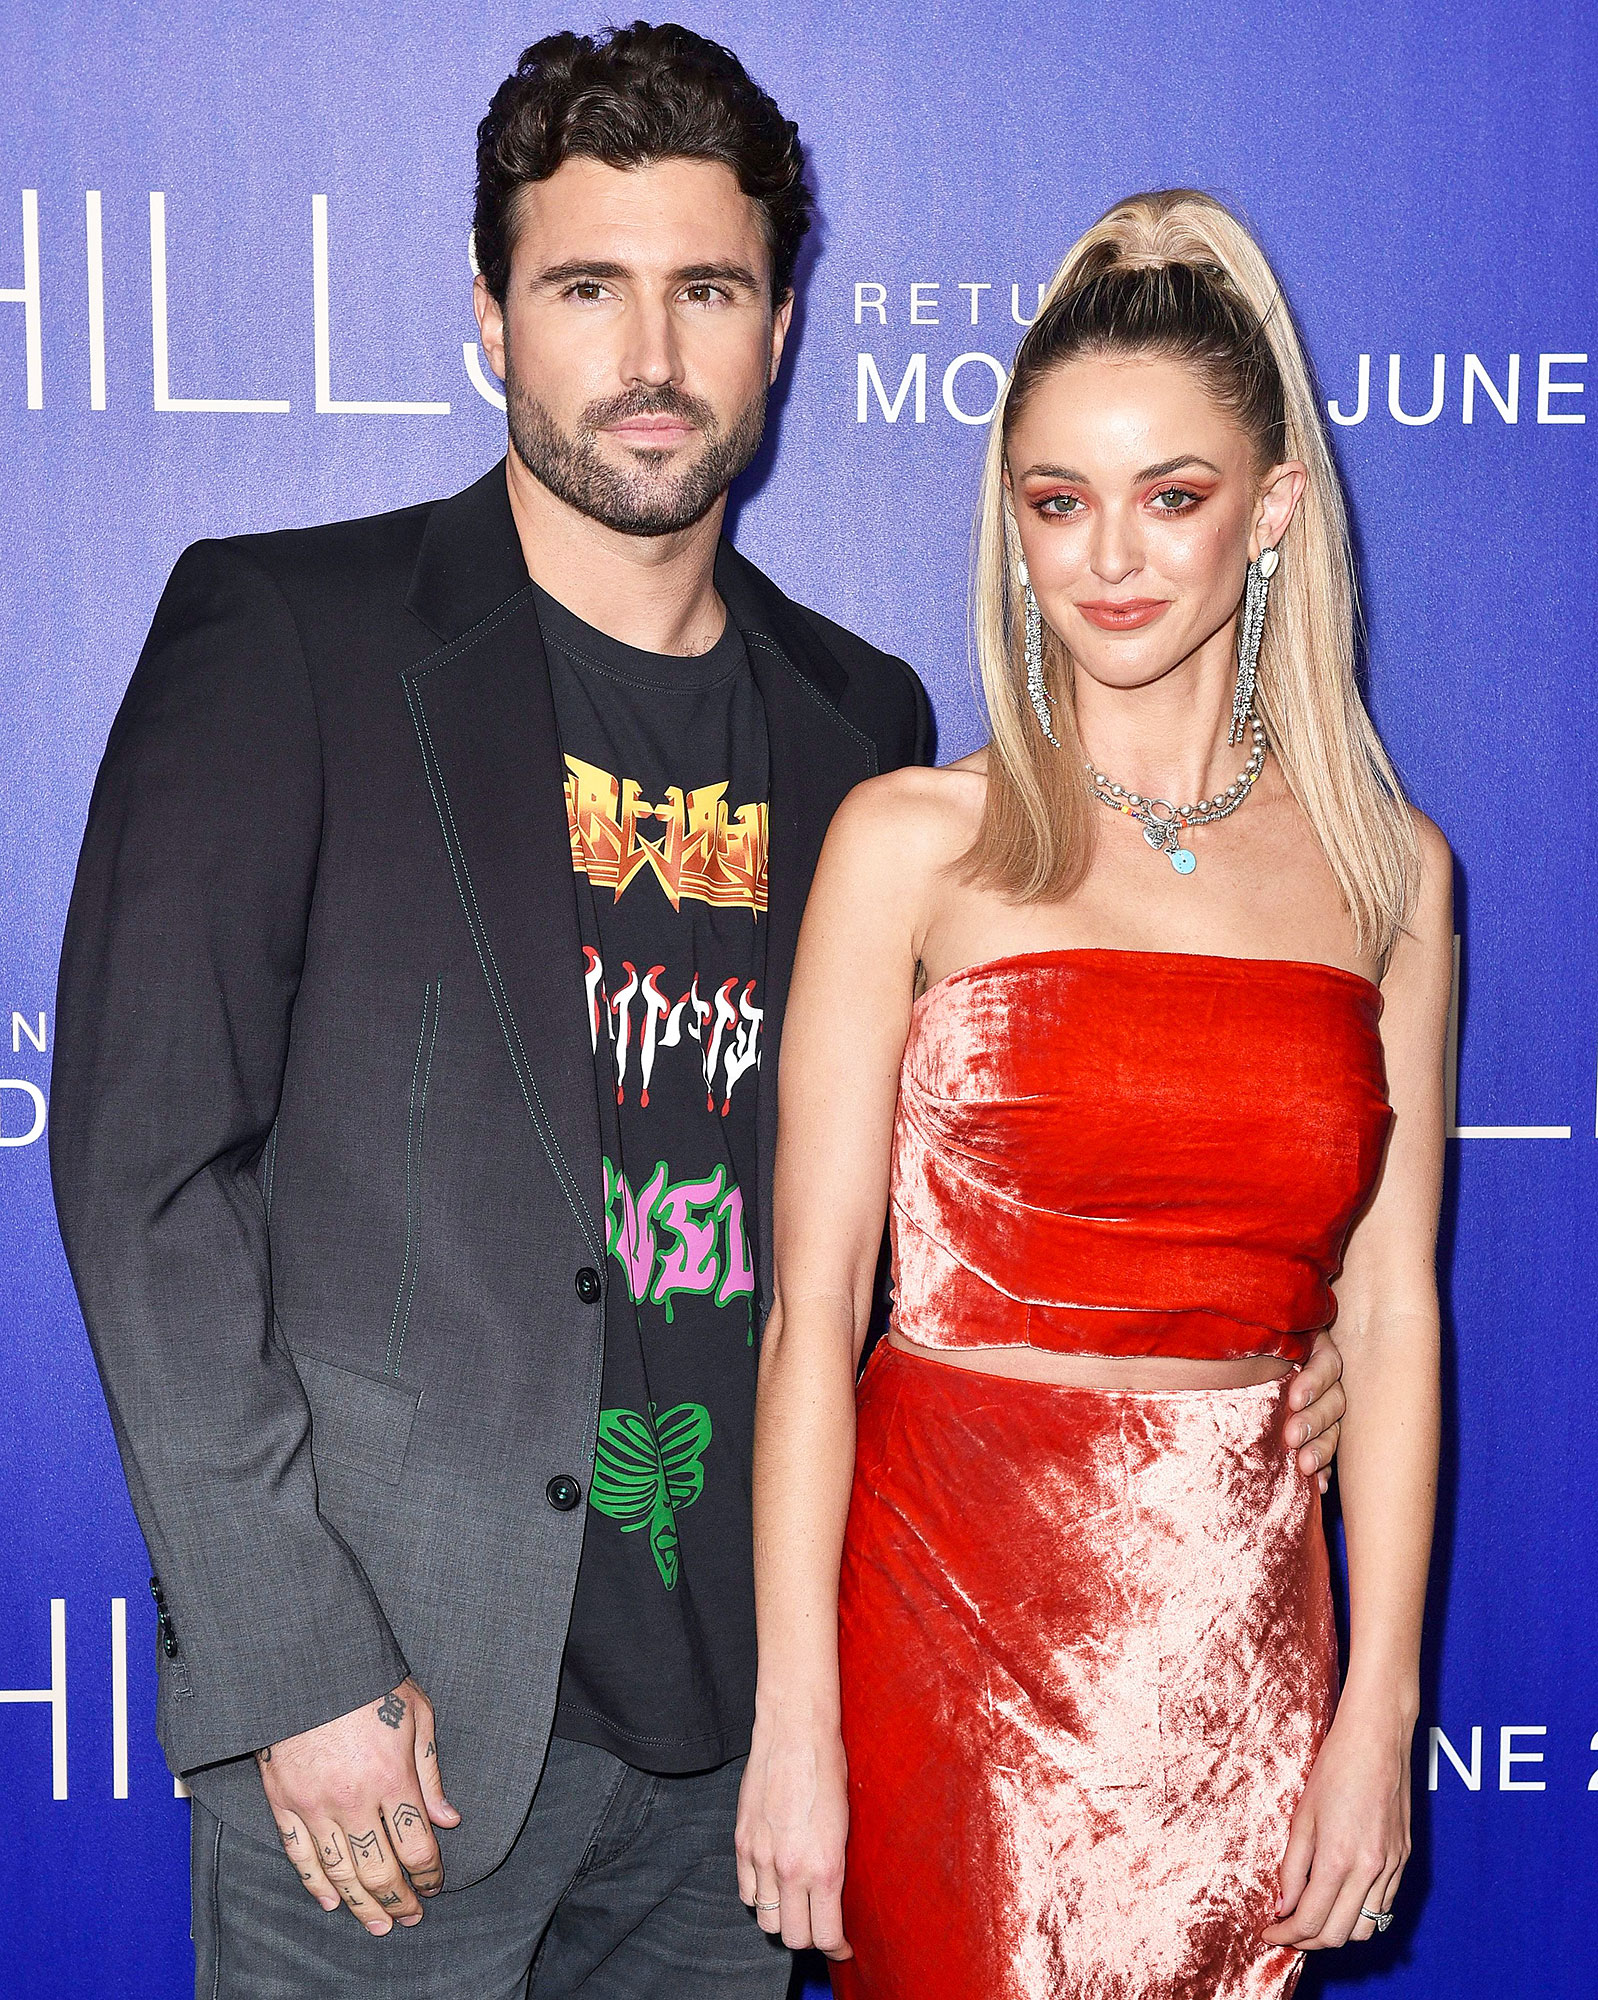 Kaitlynn Carter Opens Up About Splitting From Brody Jenner